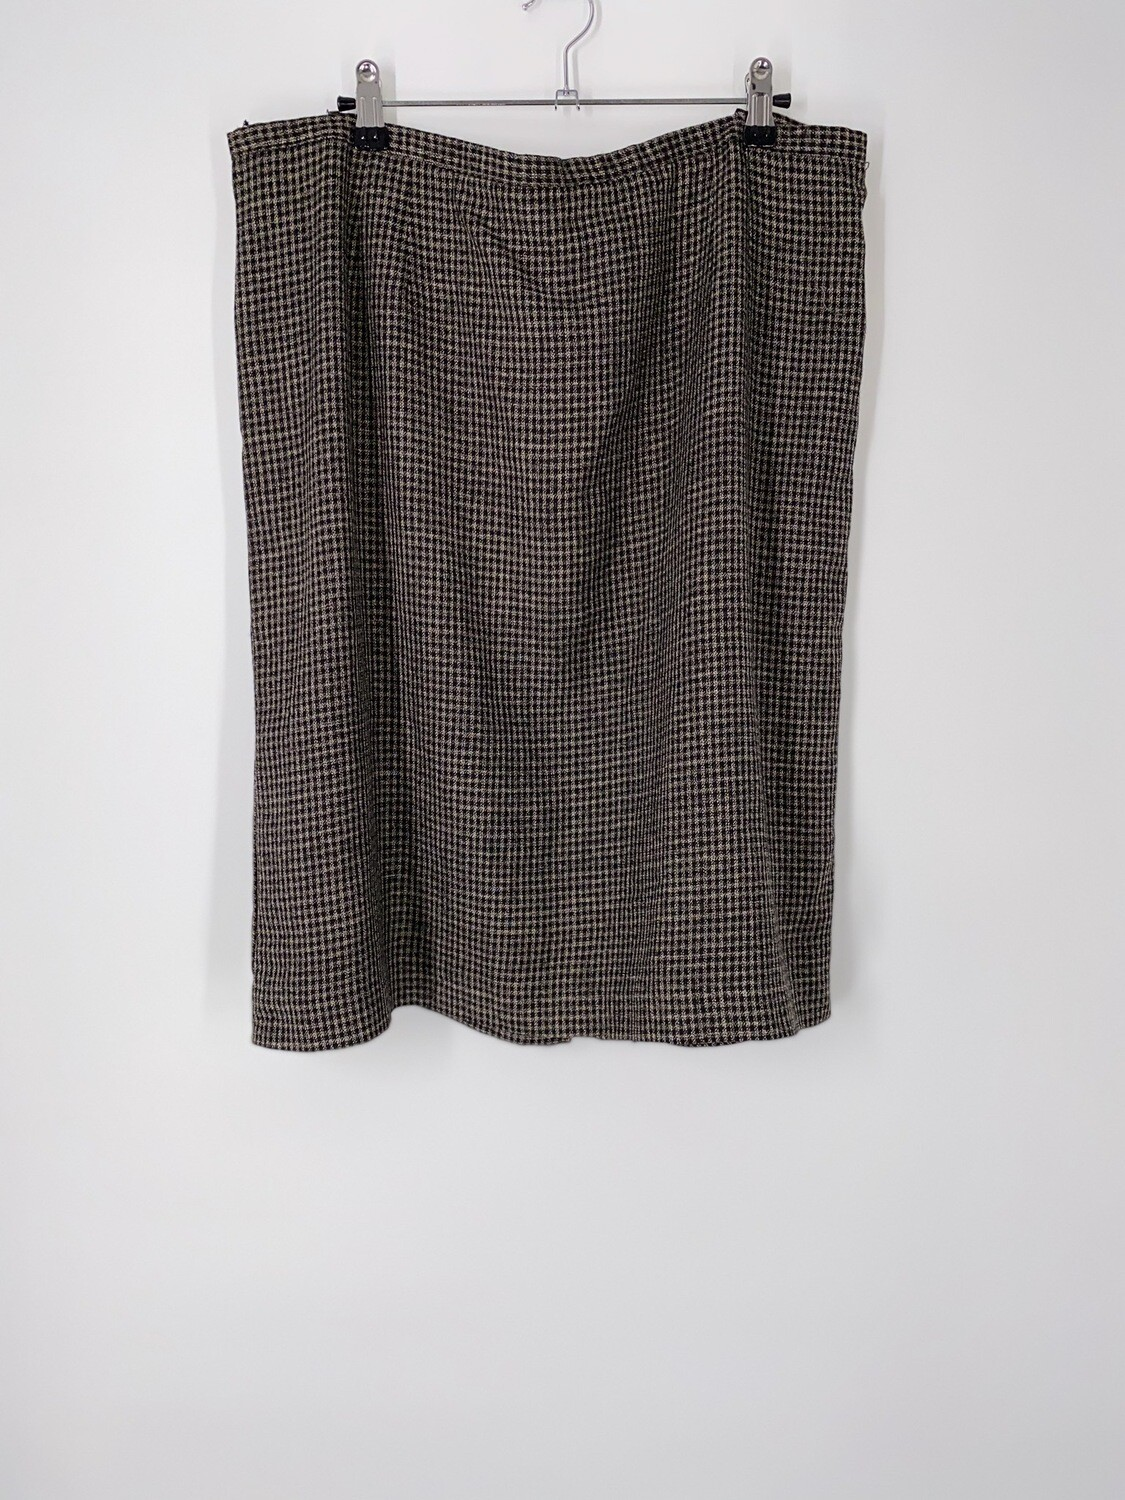 Mini Houndstooth Skirt Size L